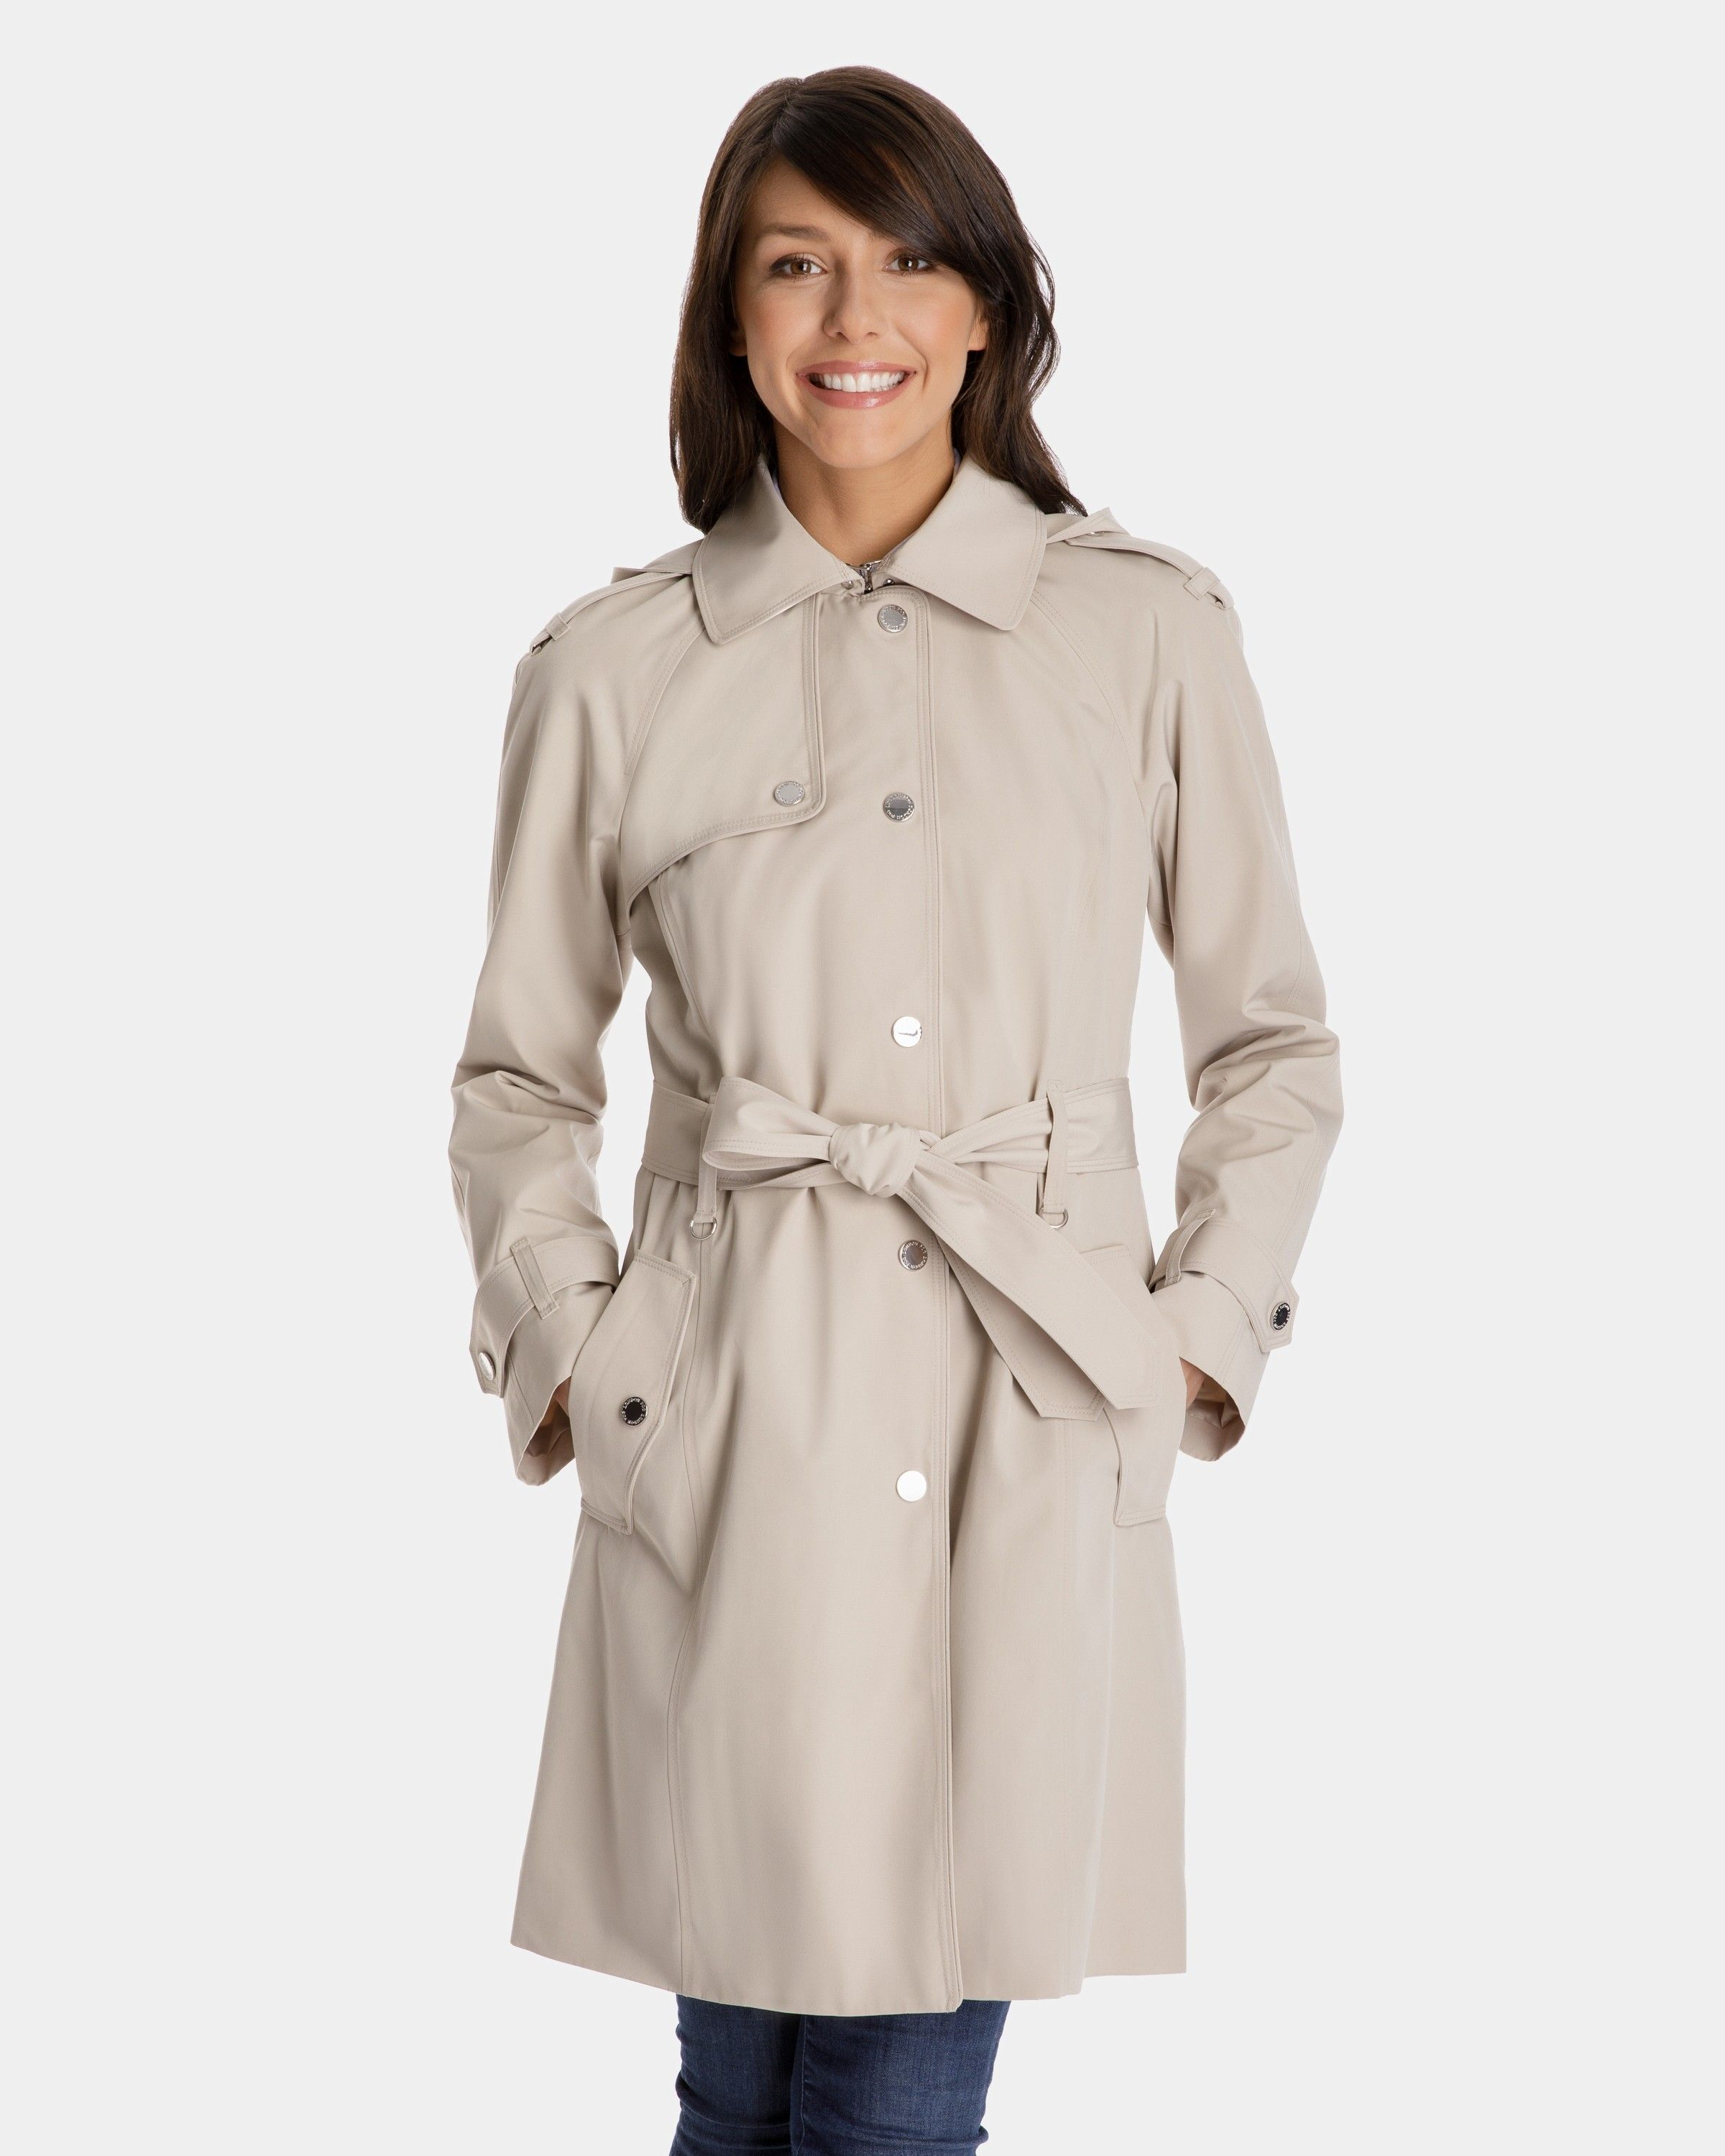 514af078 Megan Single-Breasted Trench Coat with Gun Flap and Removable Hood - Trench  Coats for Women - Coats for Women - Women